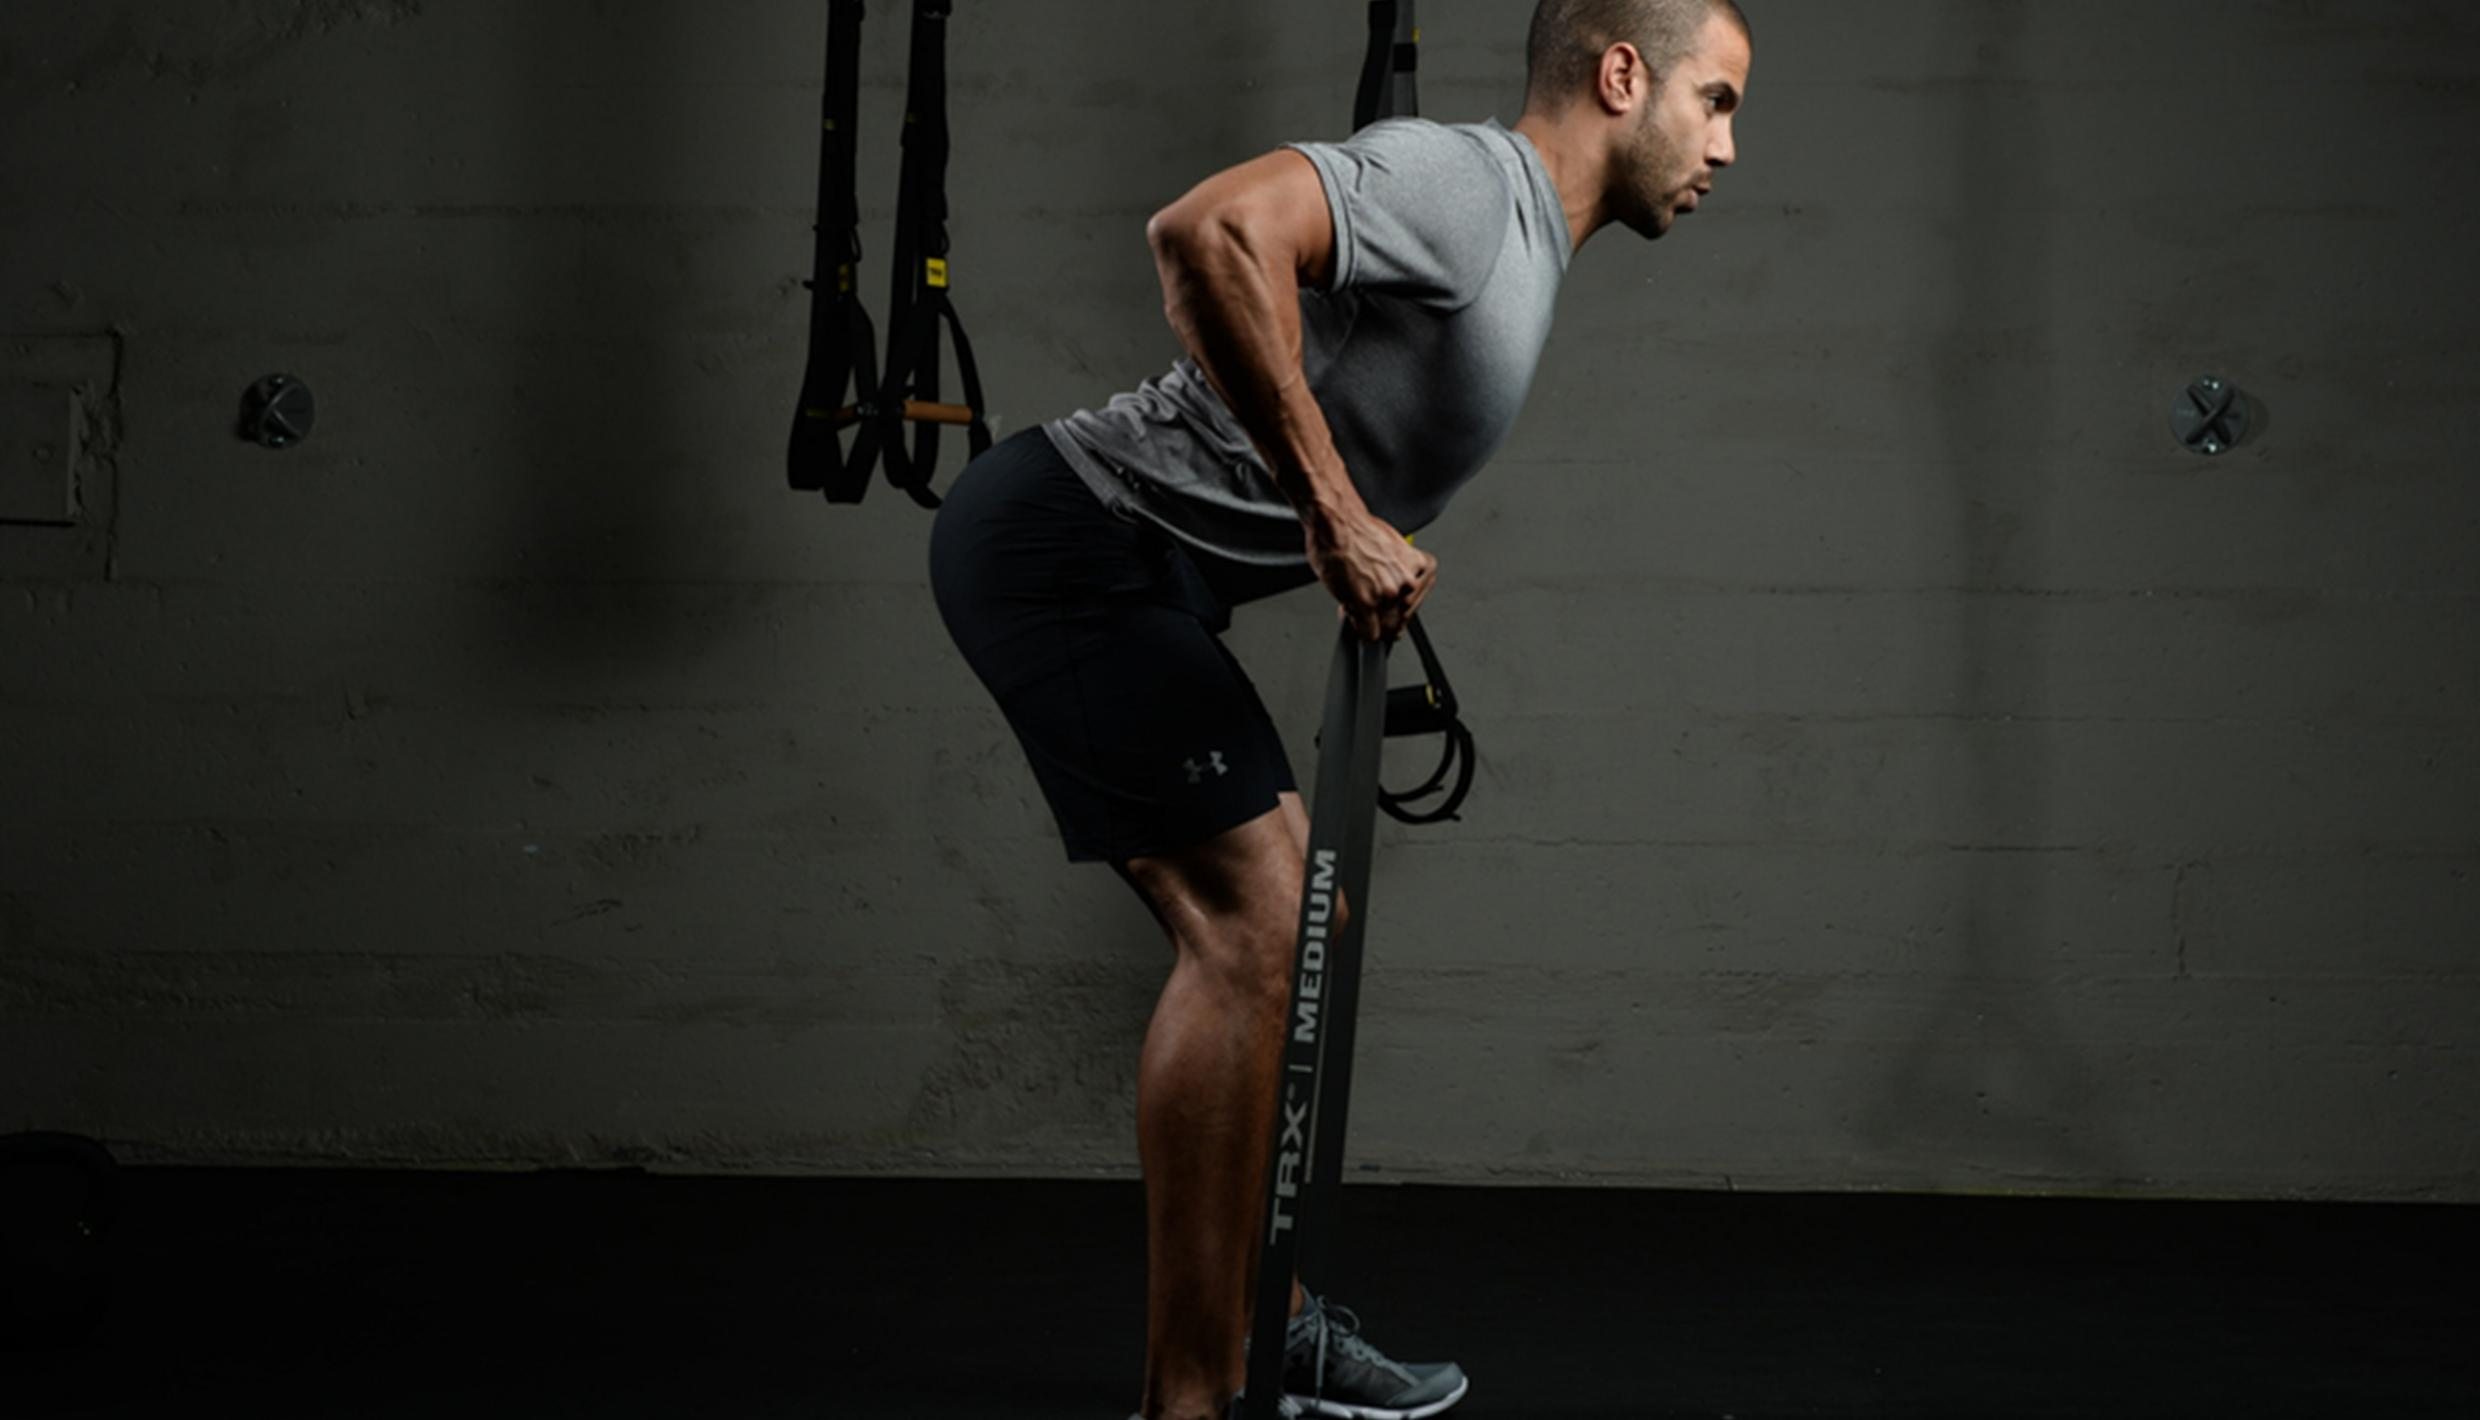 Man working out with TRX bands